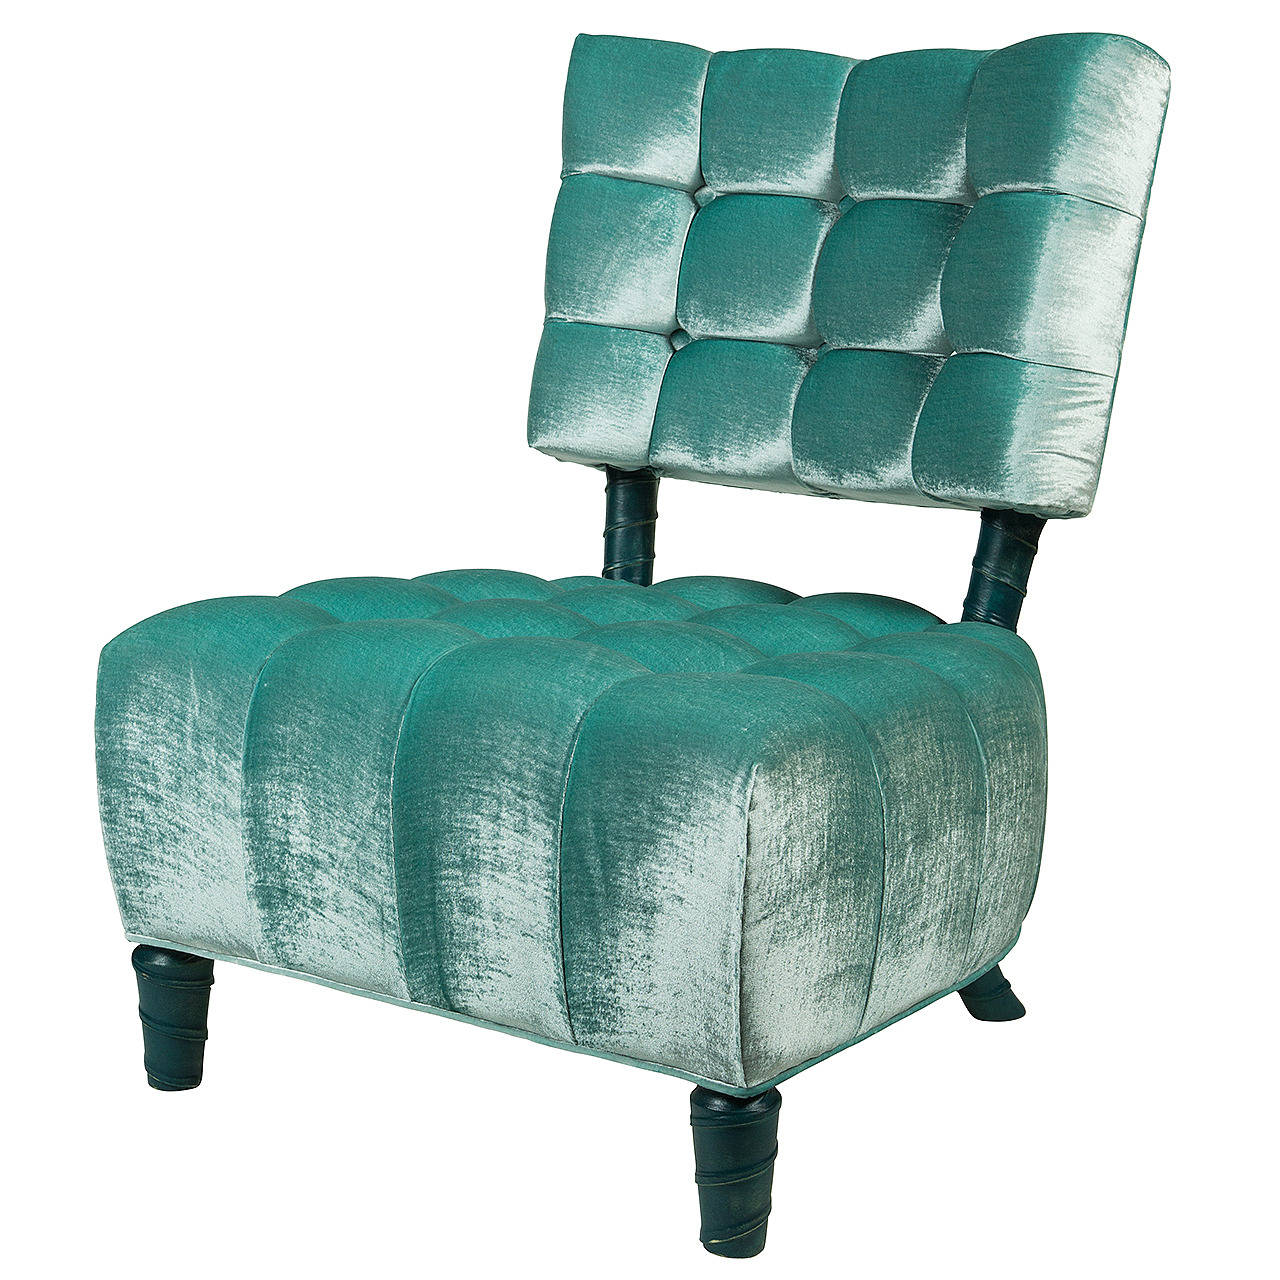 Tufted Slipper Chair Biscuit Tufted Slipper Chair By William Haines At 1stdibs